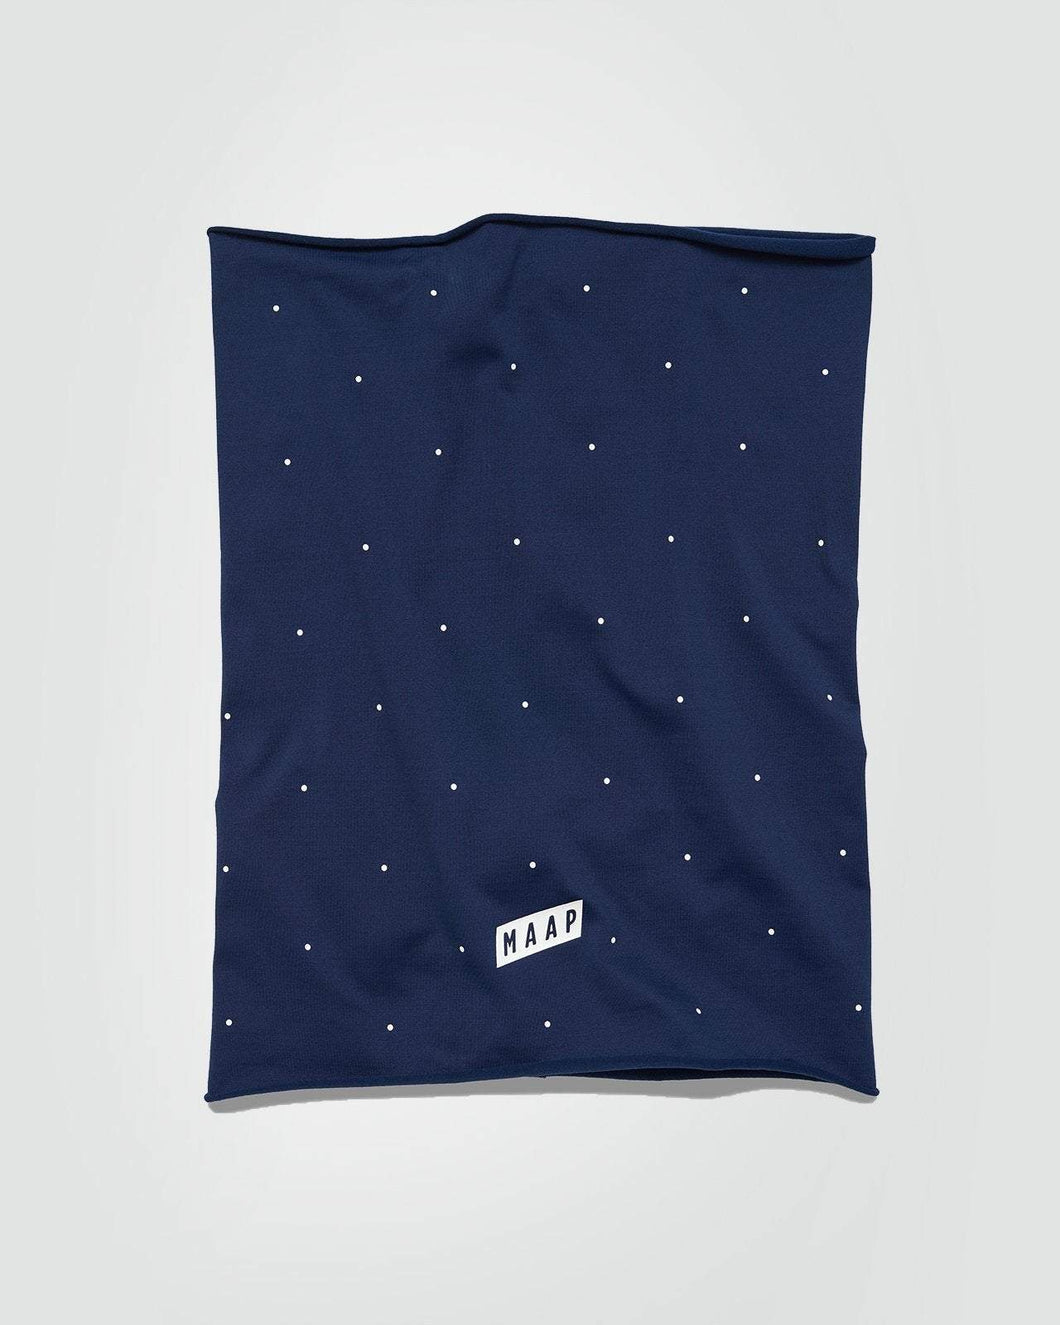 MAAP | Team Neck Warmer - Navy - Enroute.cc